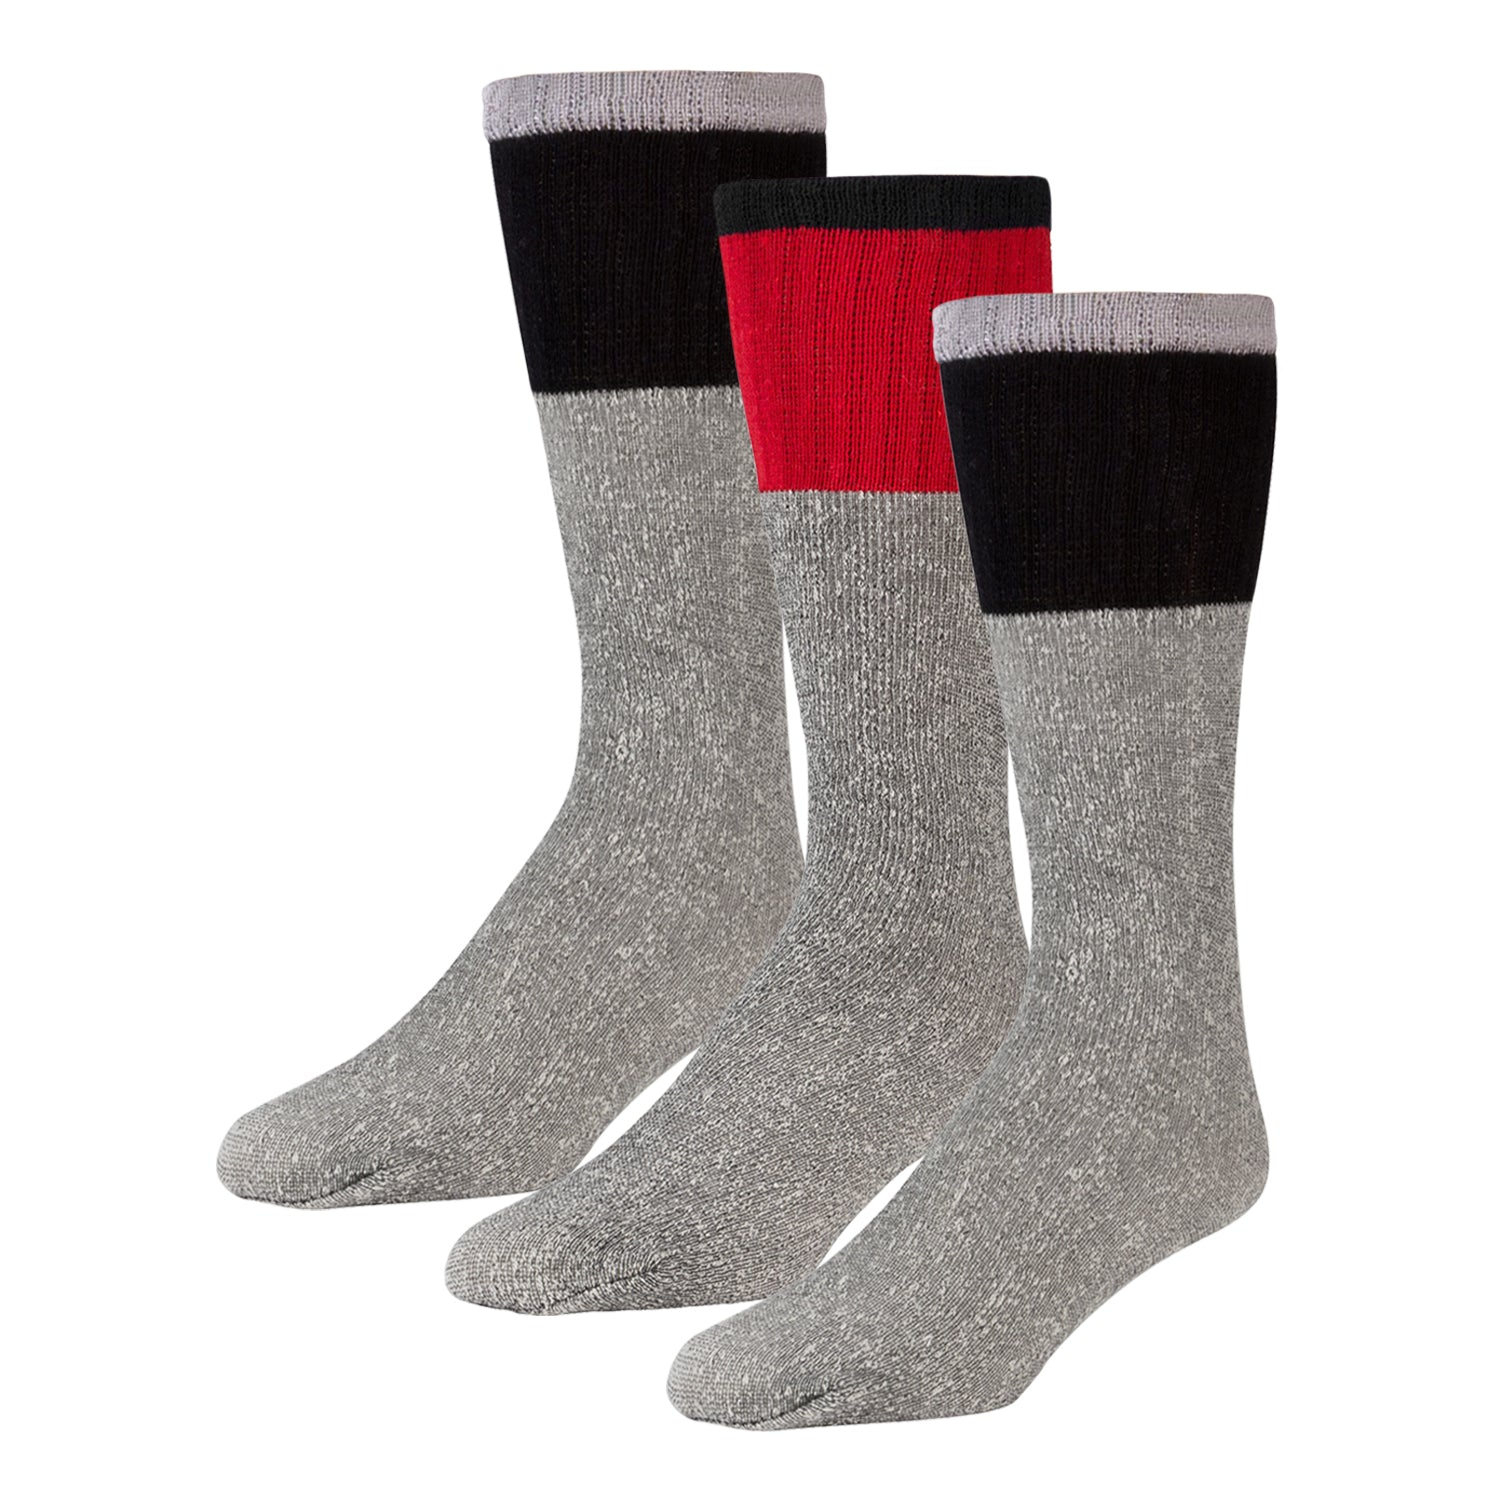 Men's Cotton Blend  Heather Grey Tube Socks For Hiking With Ribbed Colored Tops - 3 Pairs